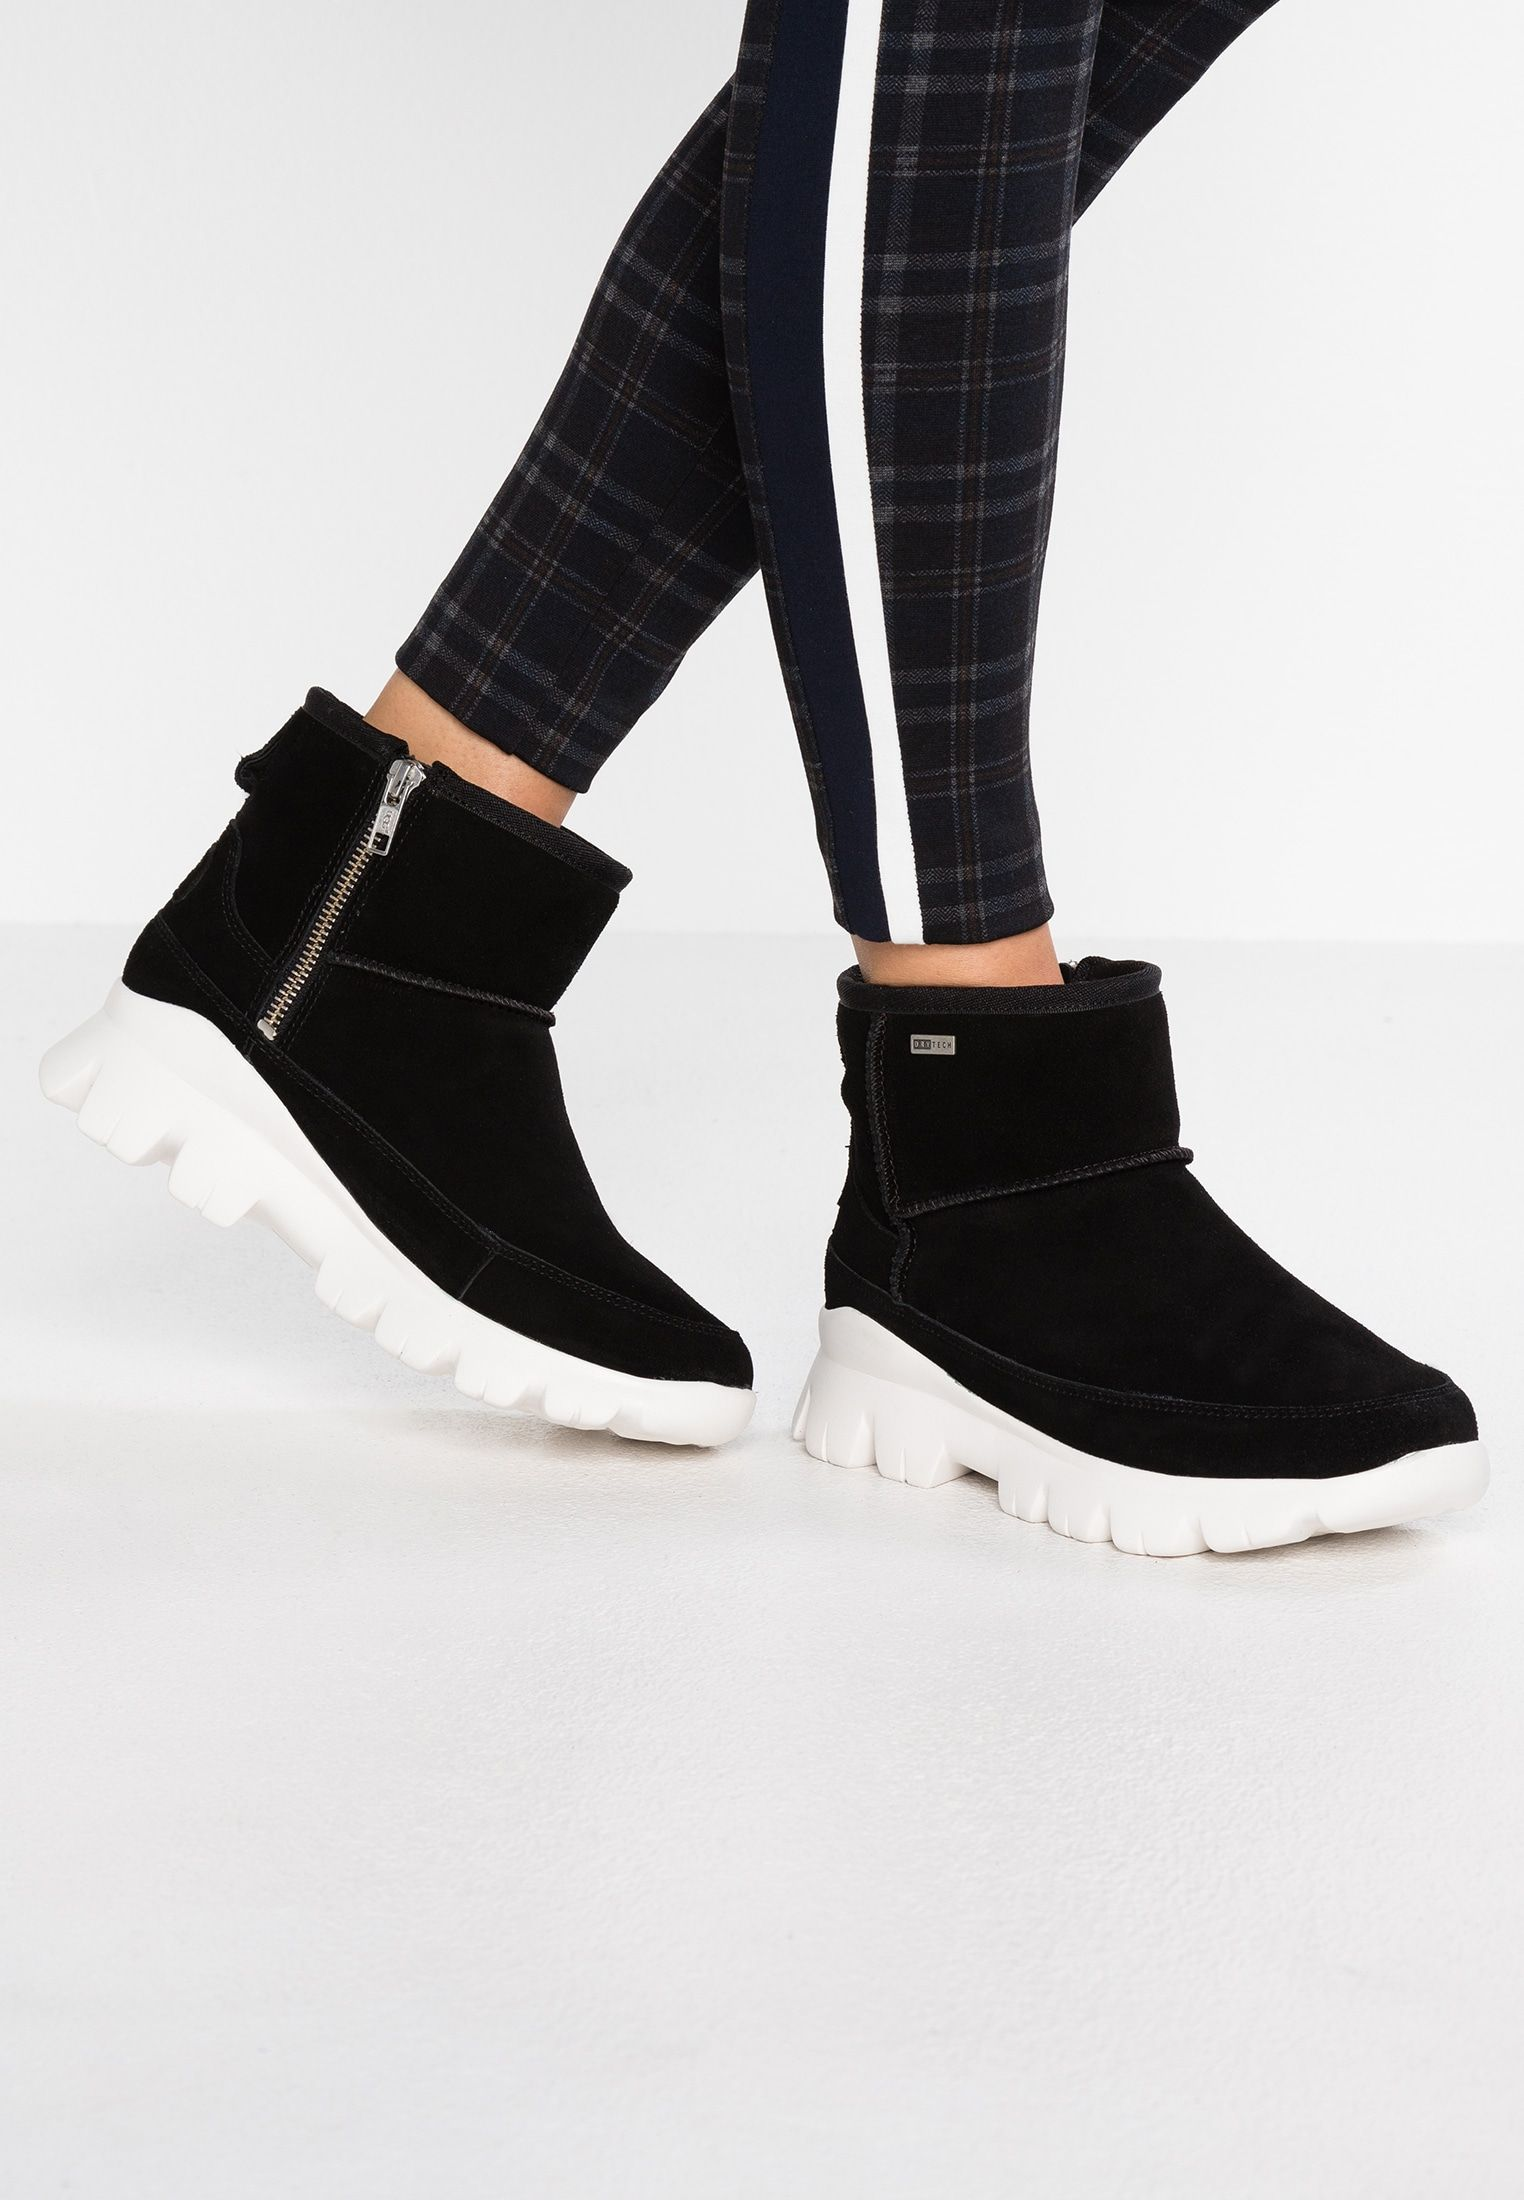 Winter fashion boots, Winter boots